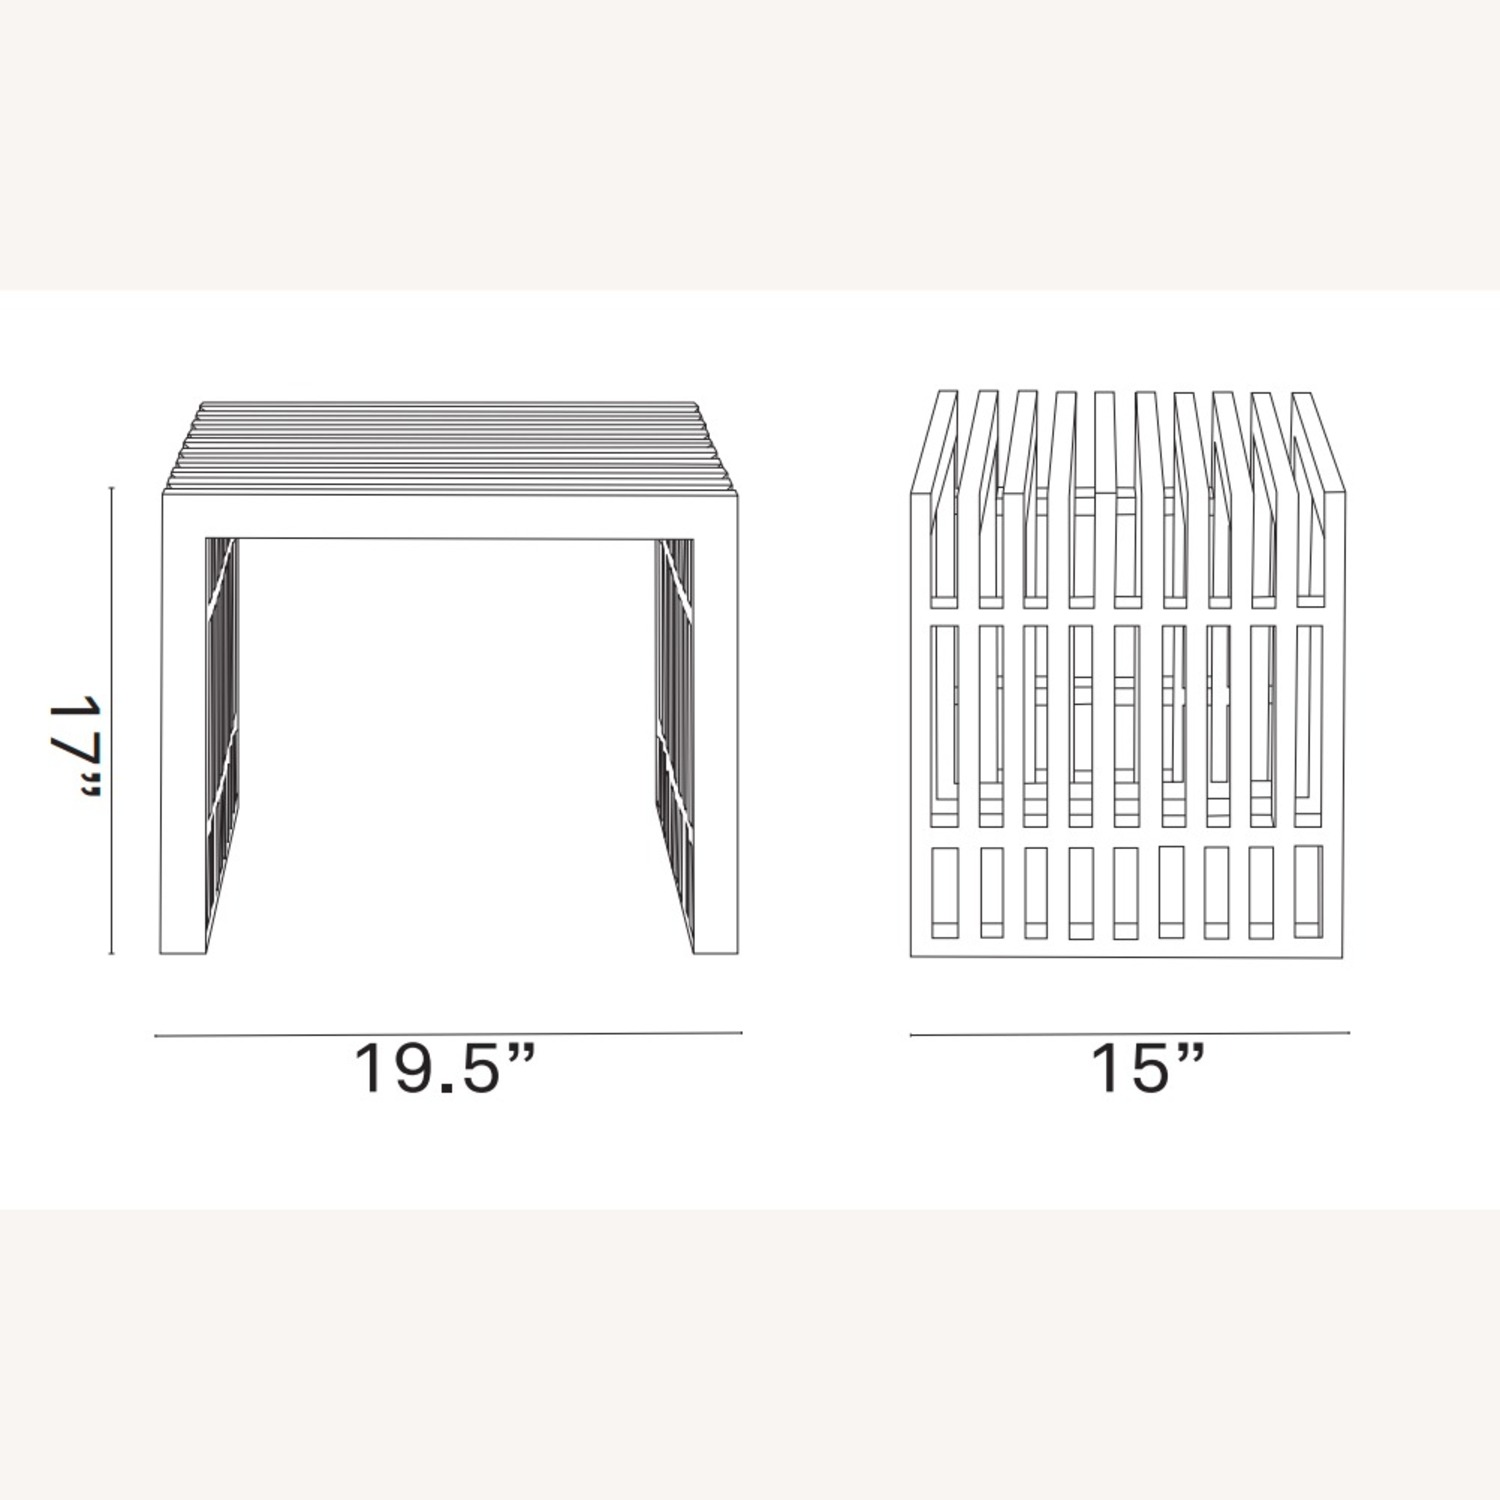 Bench In Silver Small Stainless Steel Finish - image-4